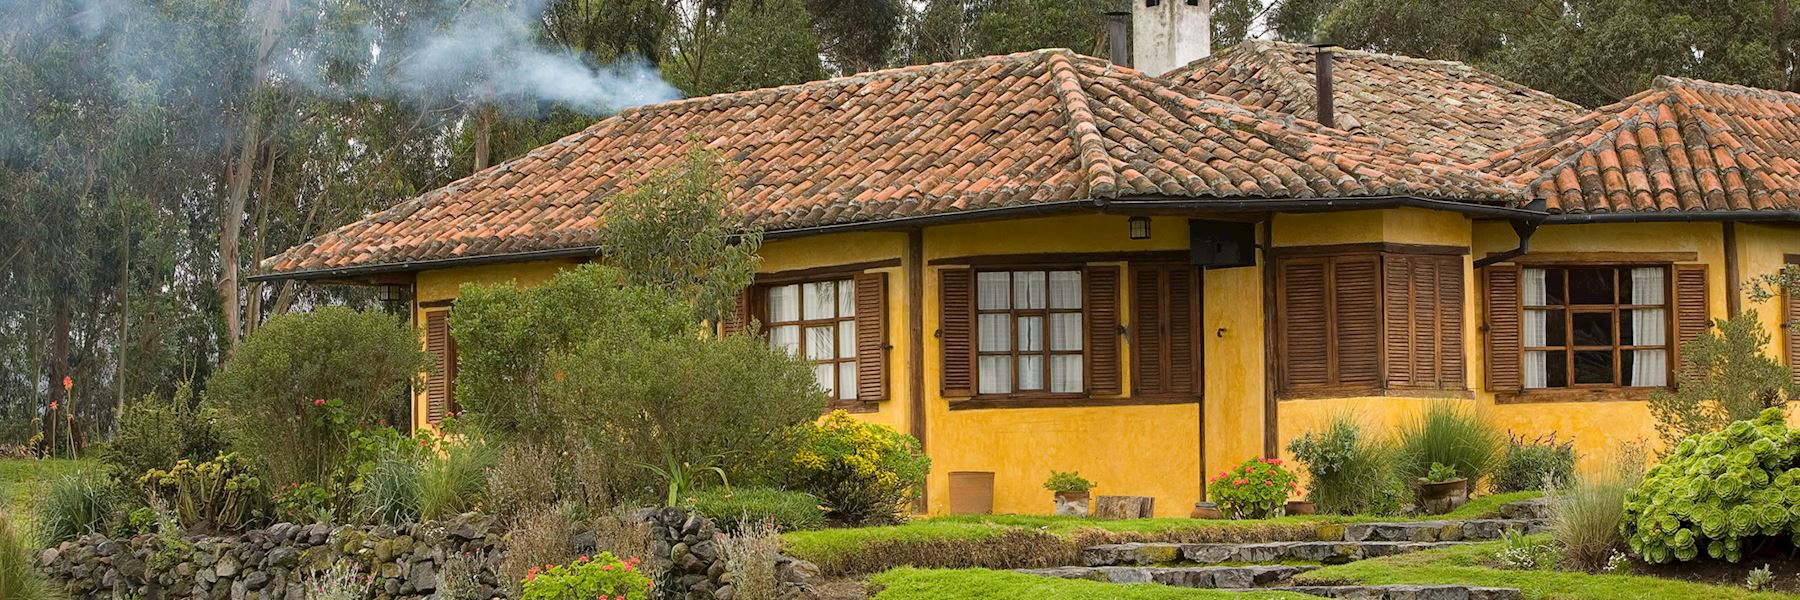 Accommodations in Ecuador